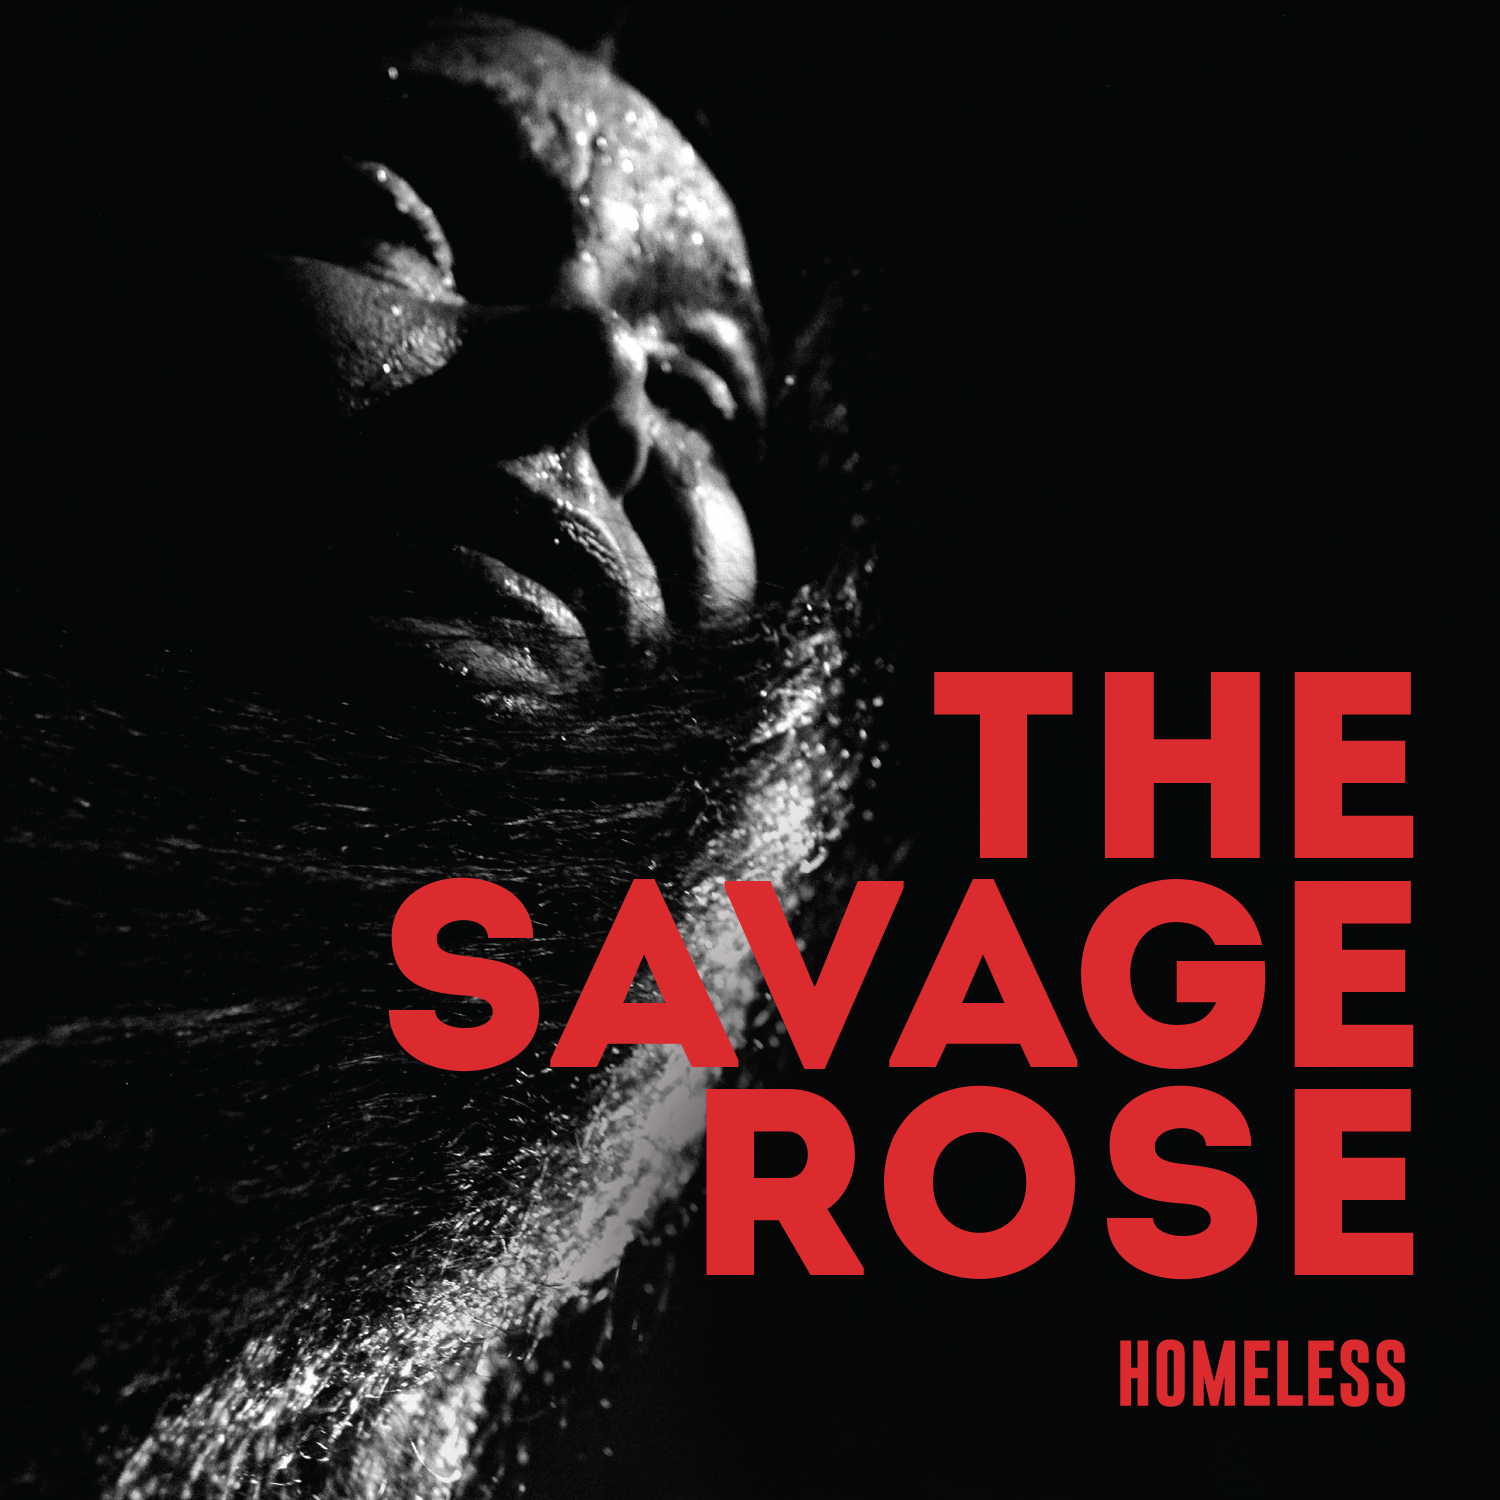 TheSavageRose_Homeless_Cover_Square.jpg